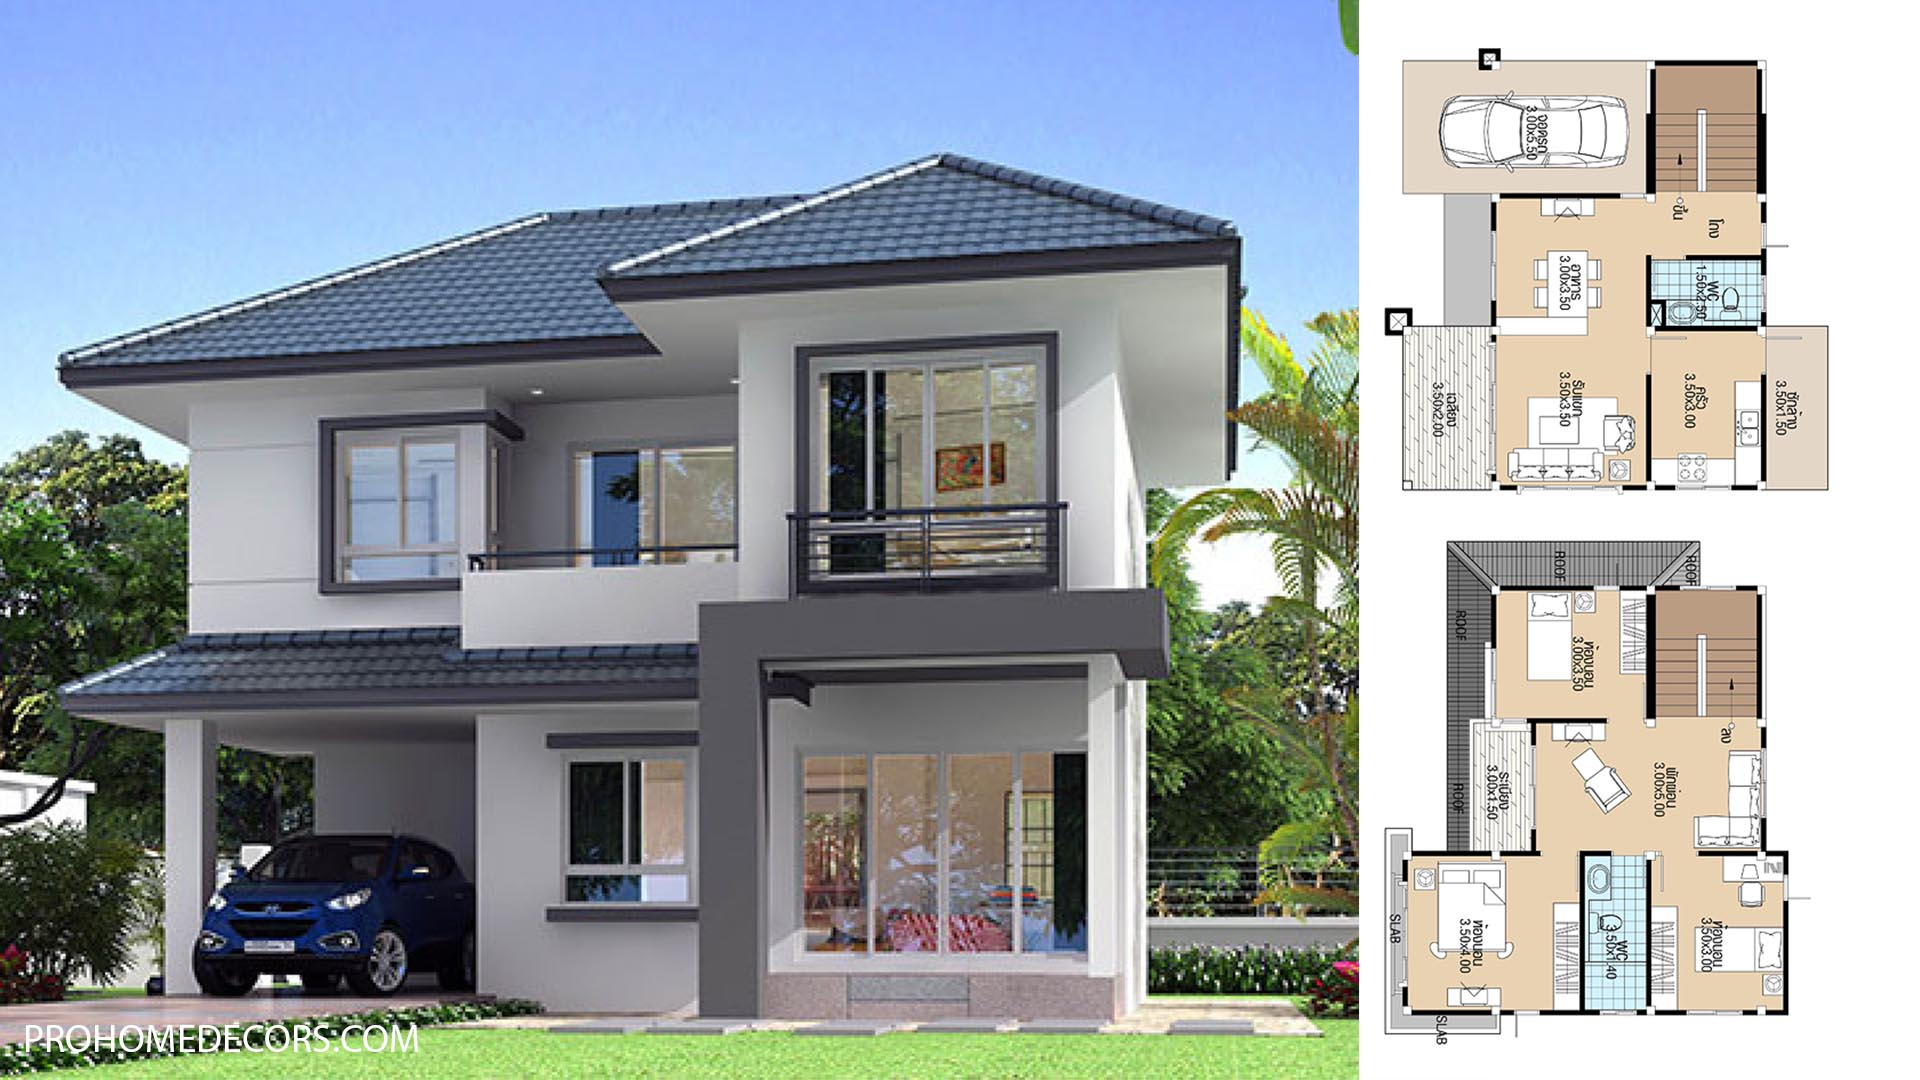 House Plans 9.5x8.5 with 3 Bedrooms